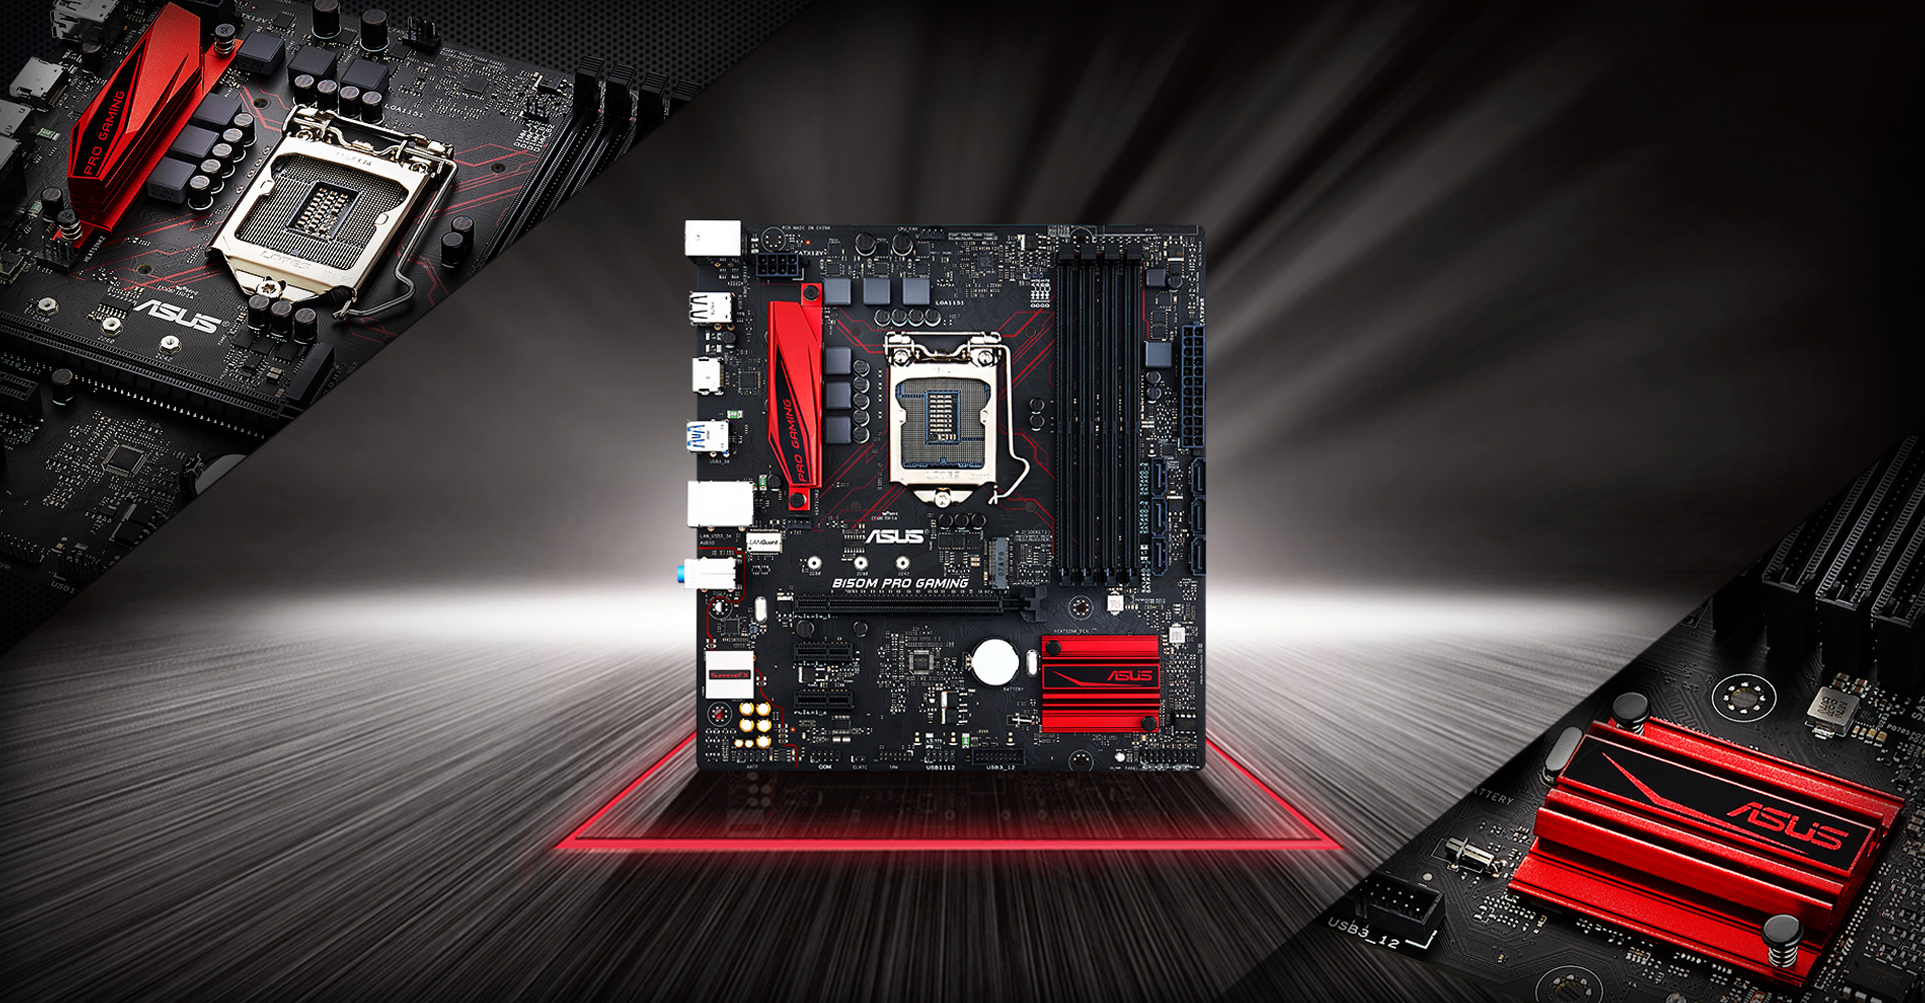 ASUS B150I Pro Gaming/Aura Intel Graphics Windows Vista 32-BIT